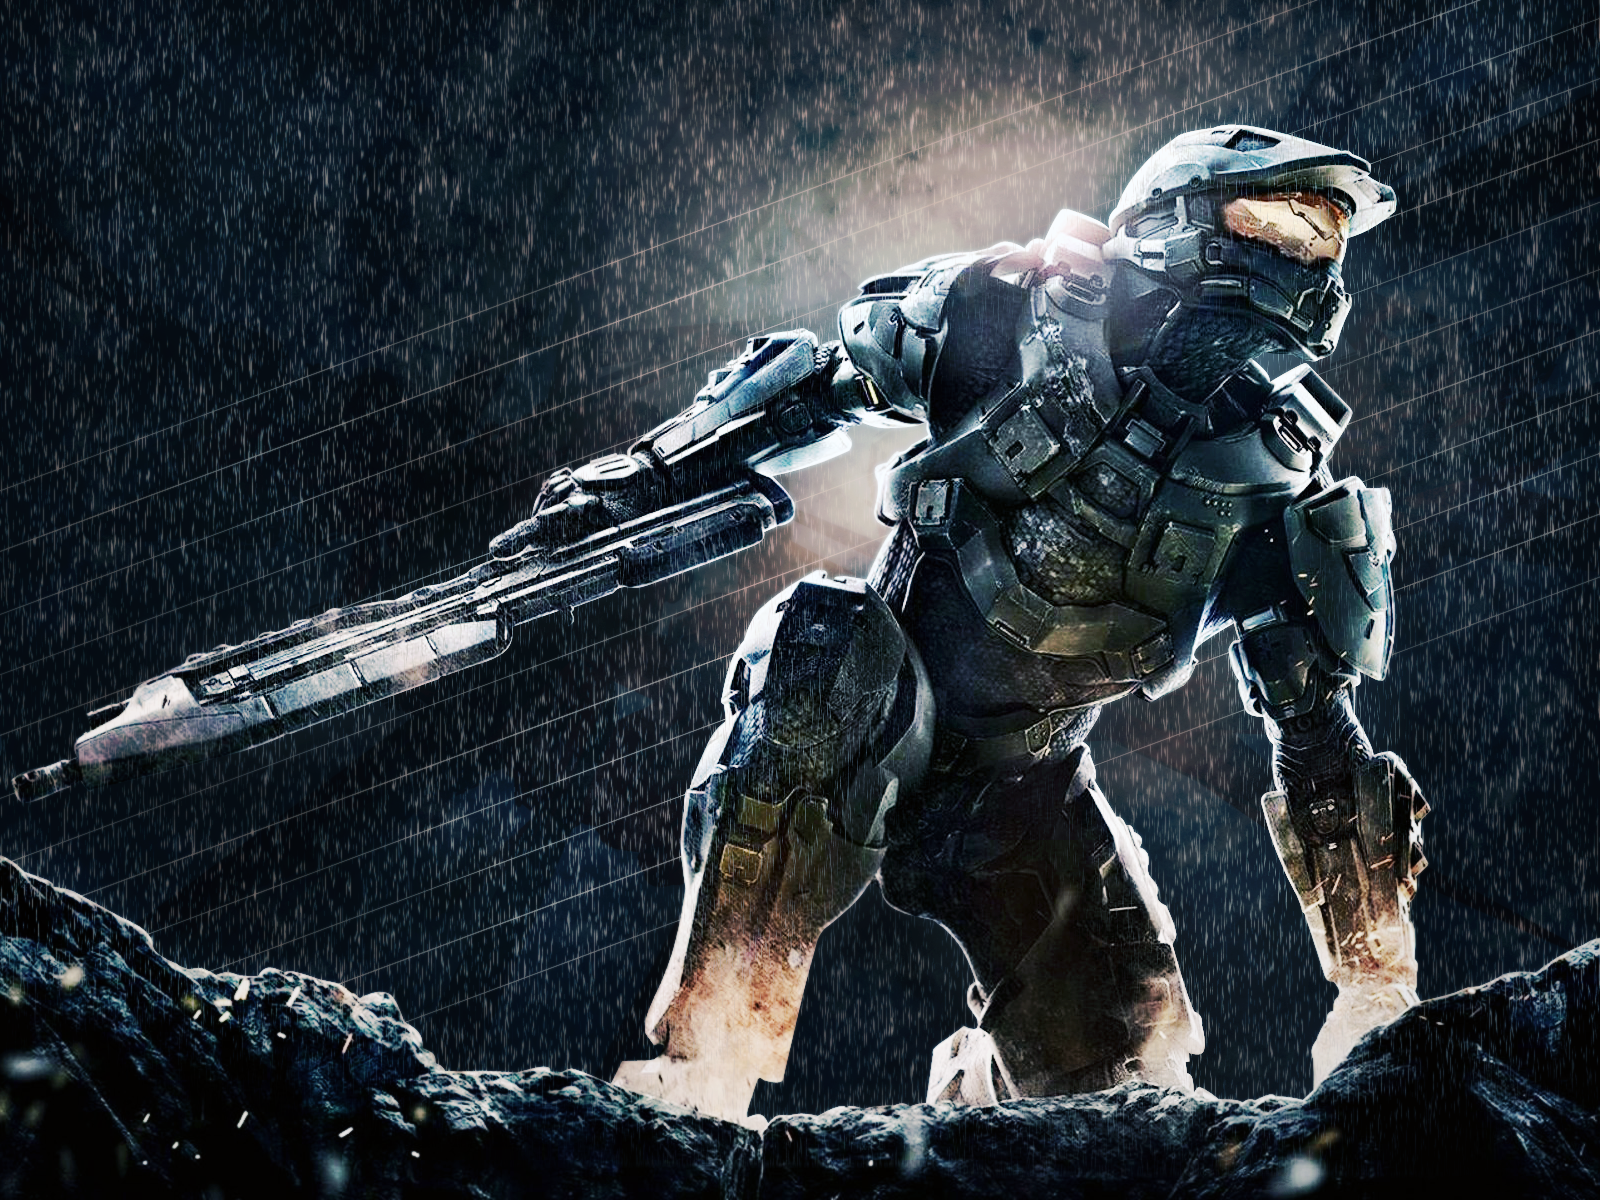 halo 4 master chief wallpaper by zehbehdee d5kob55 1600x1200